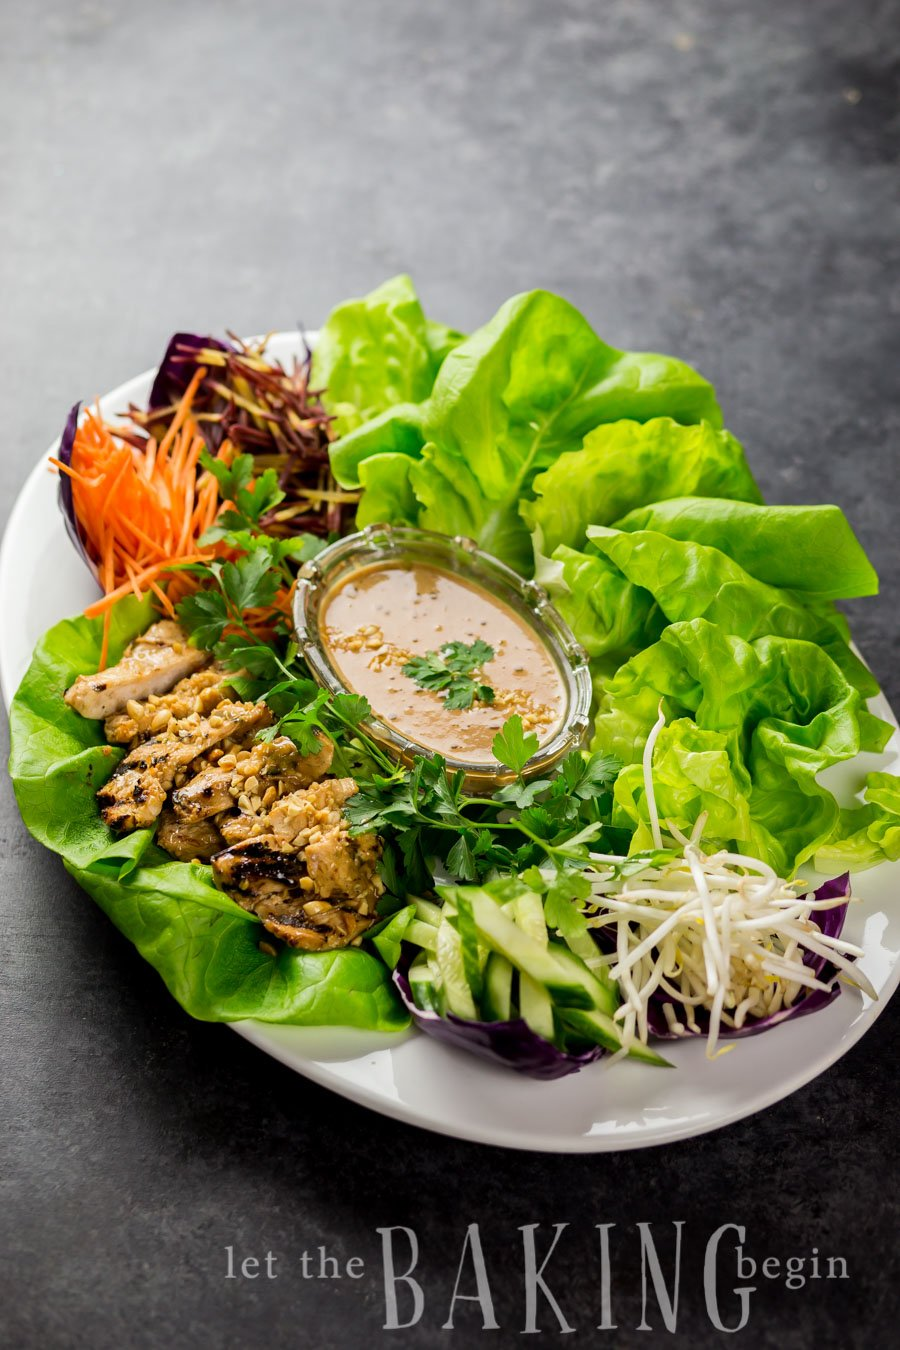 A plate with a lettuce, Thai chicken, peanut sauce and toppings.